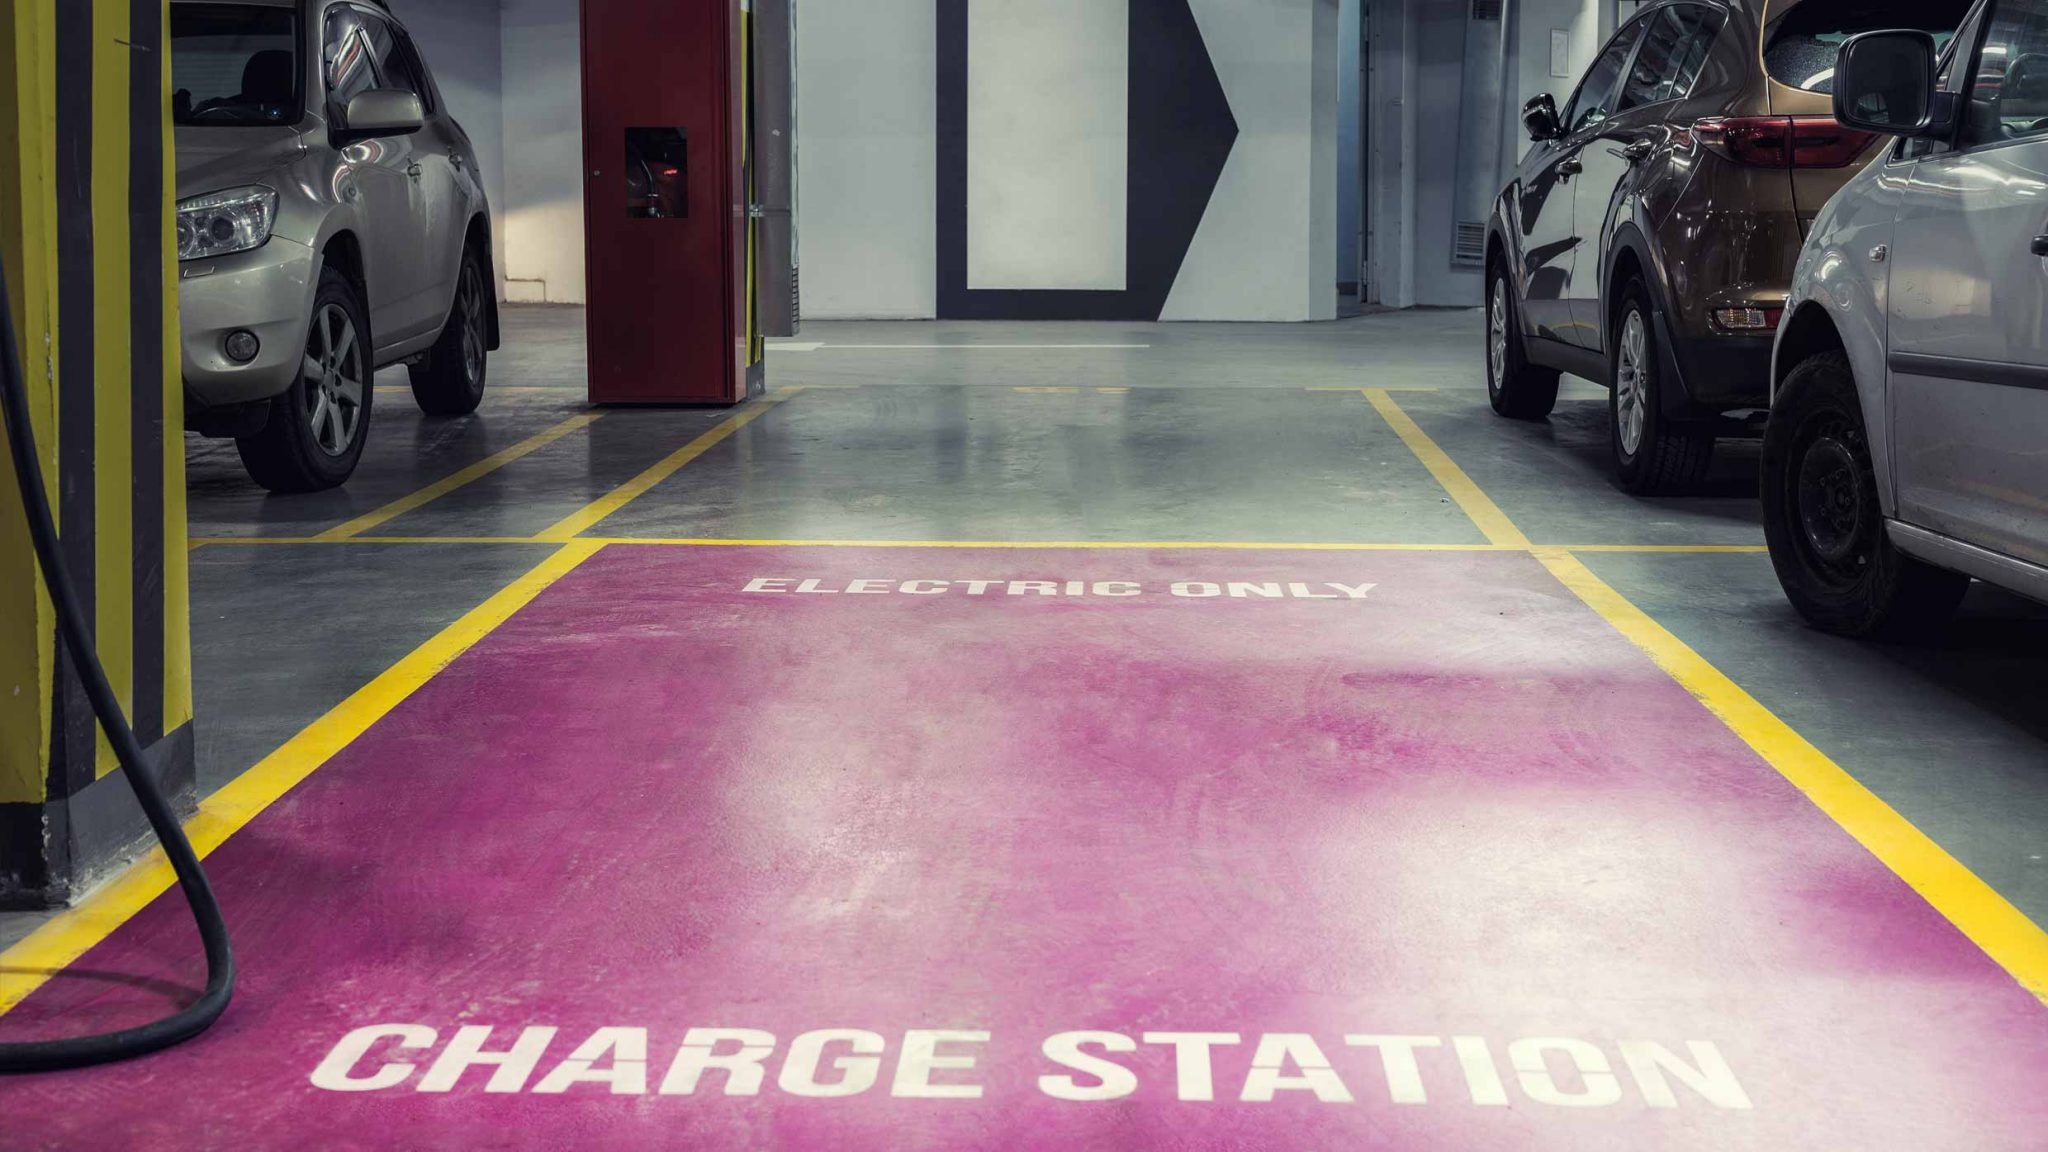 Charge Station in Underground Car Park